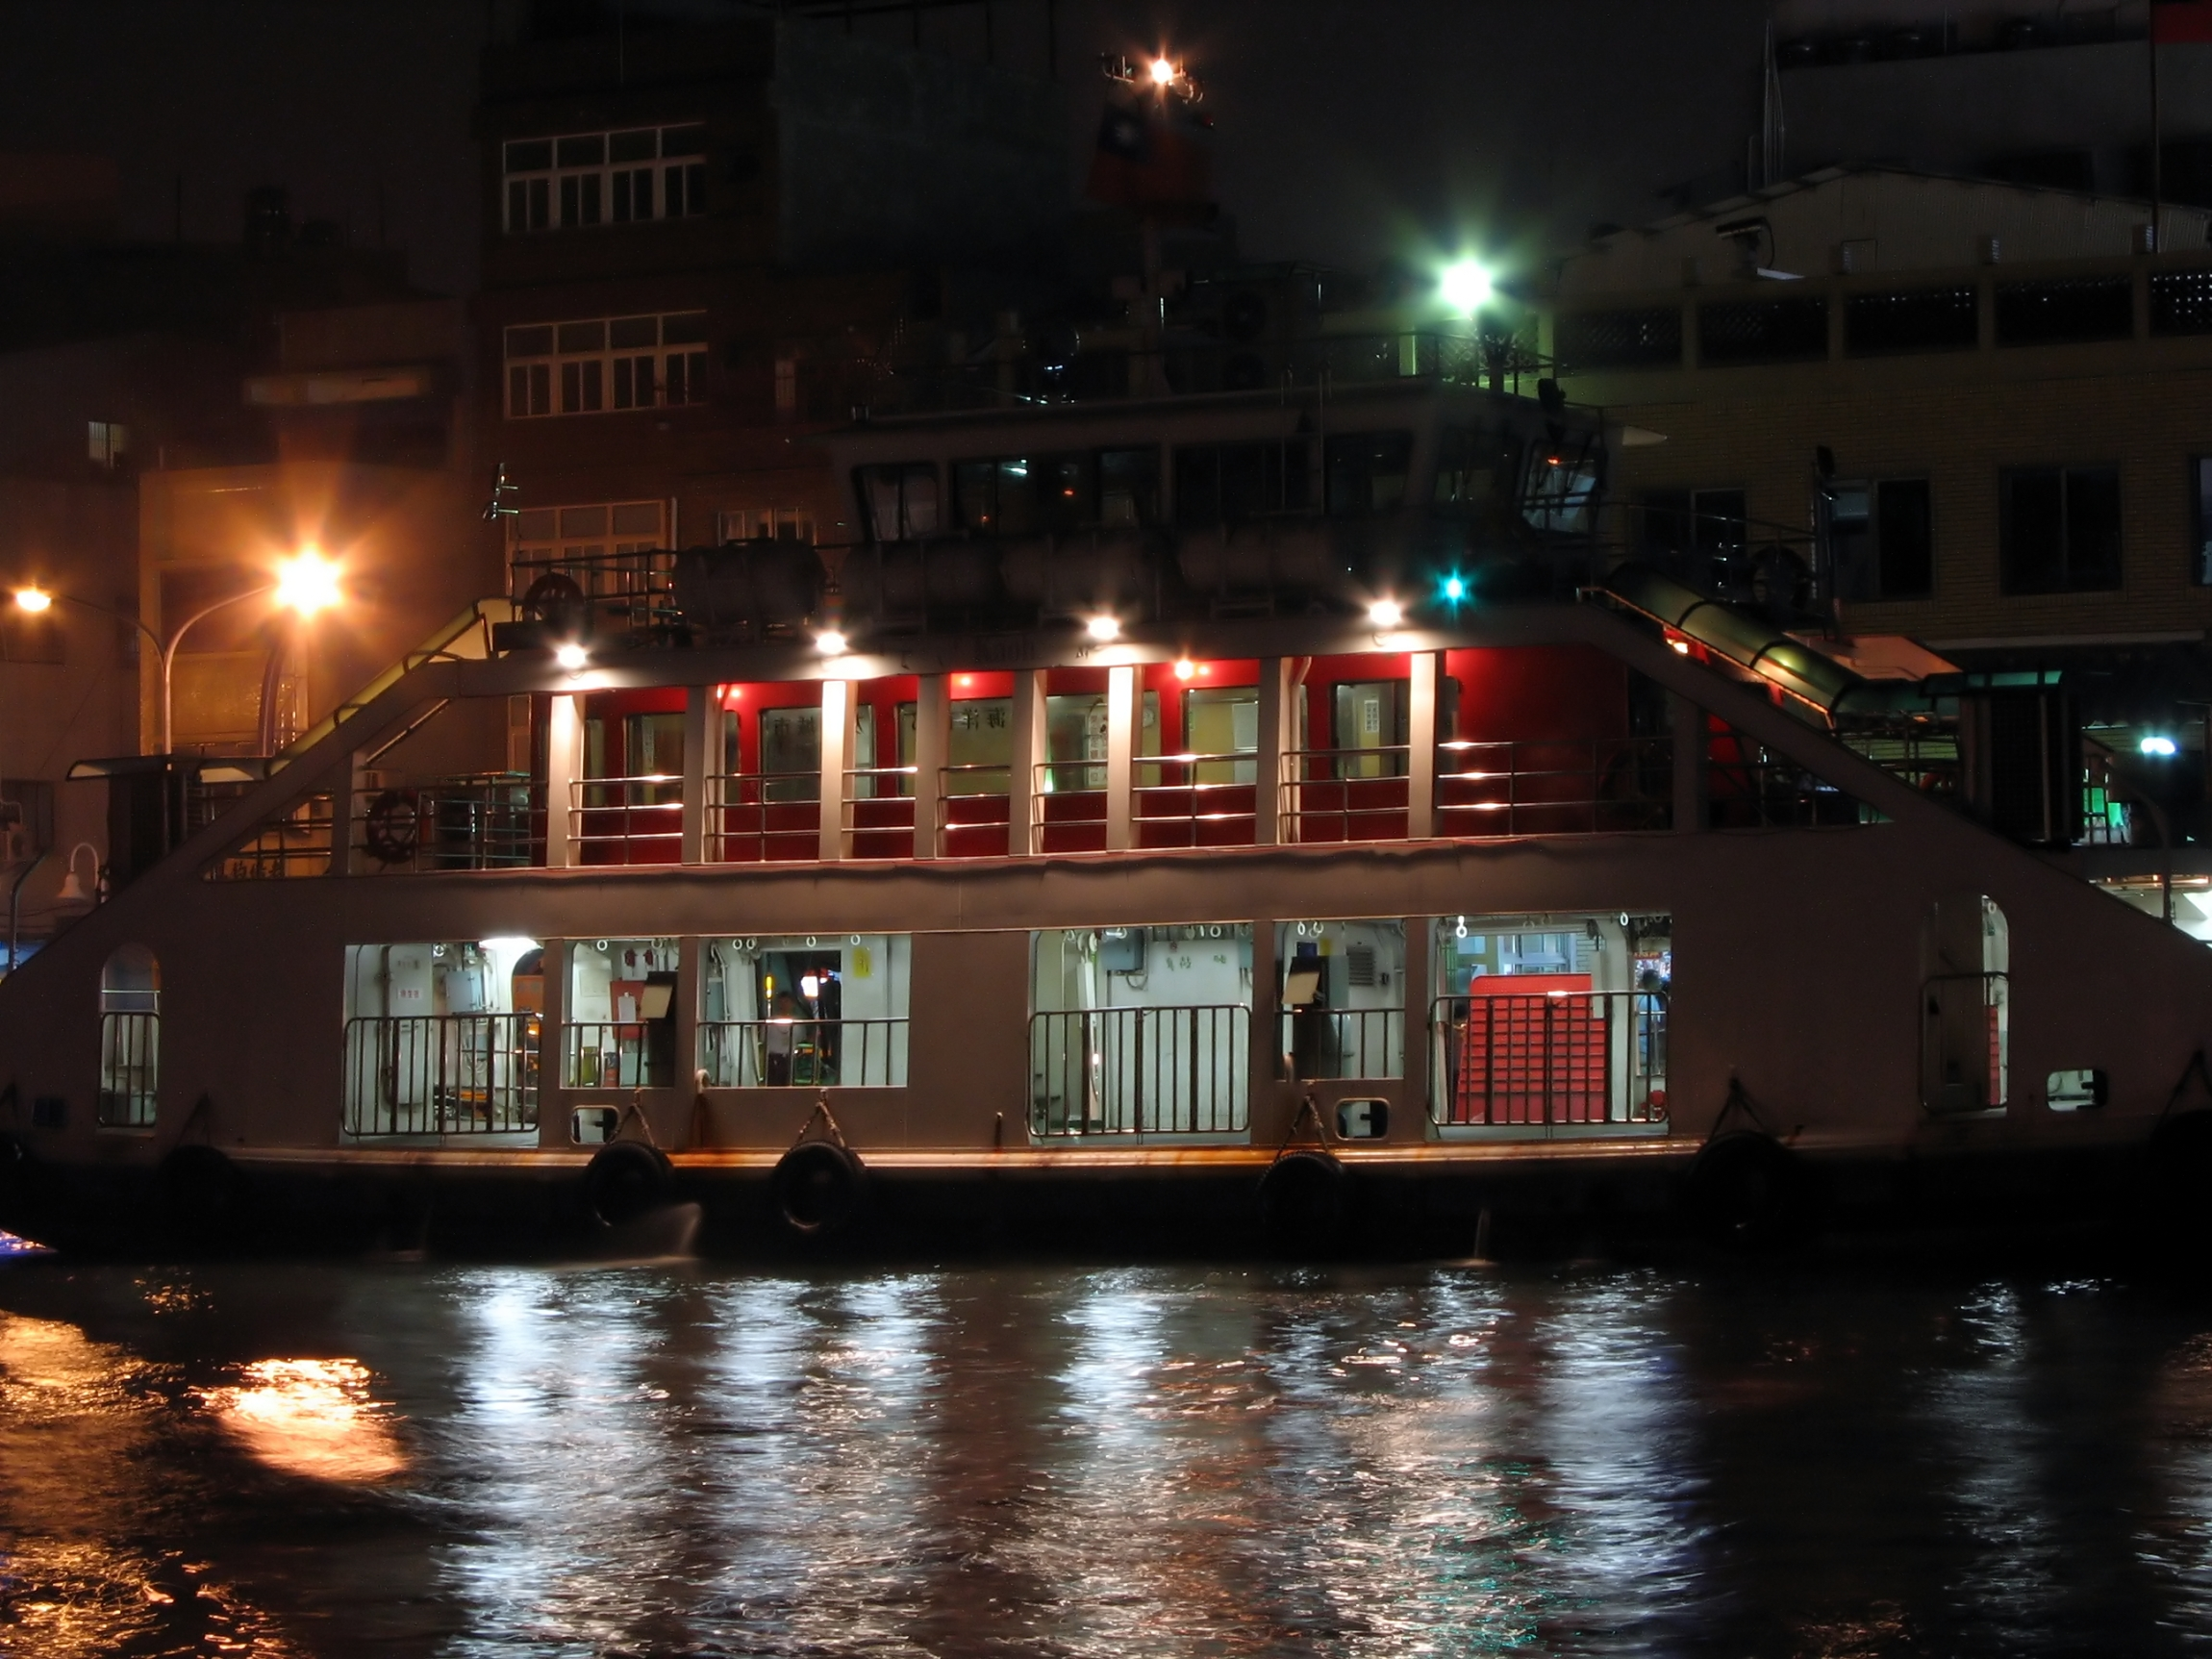 River ferry by night photo